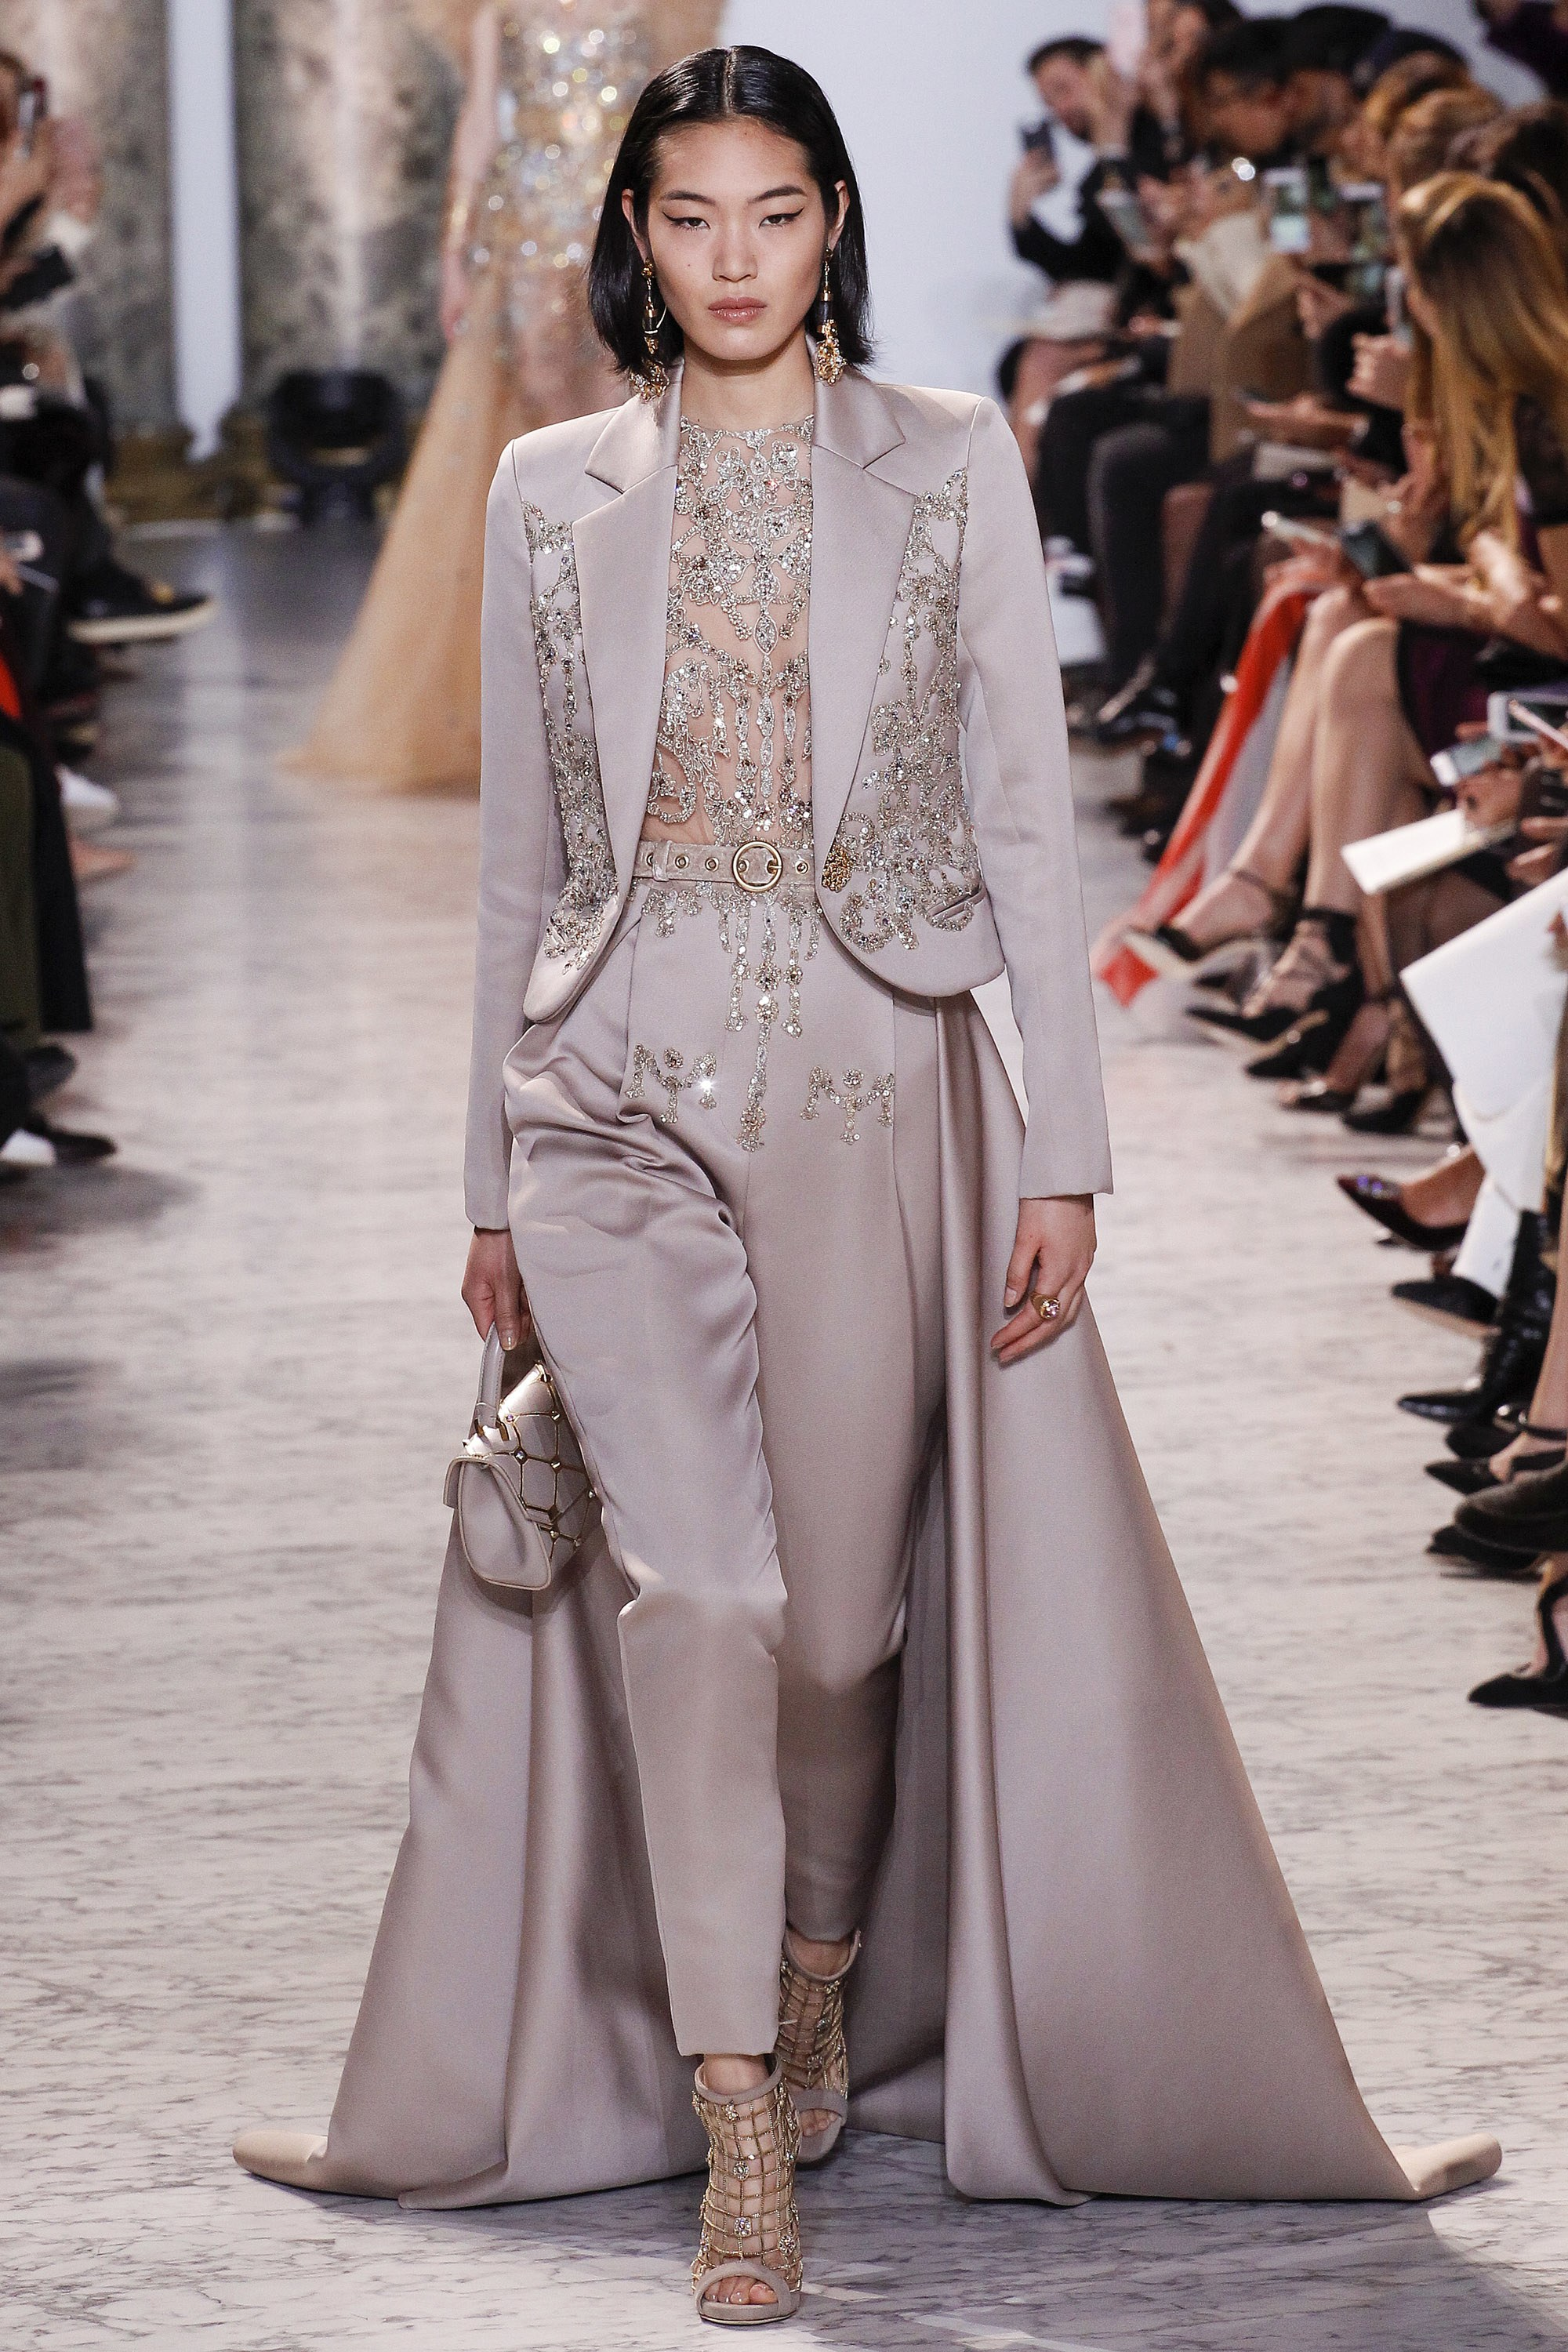 Asian Model in Elie Saab Collection